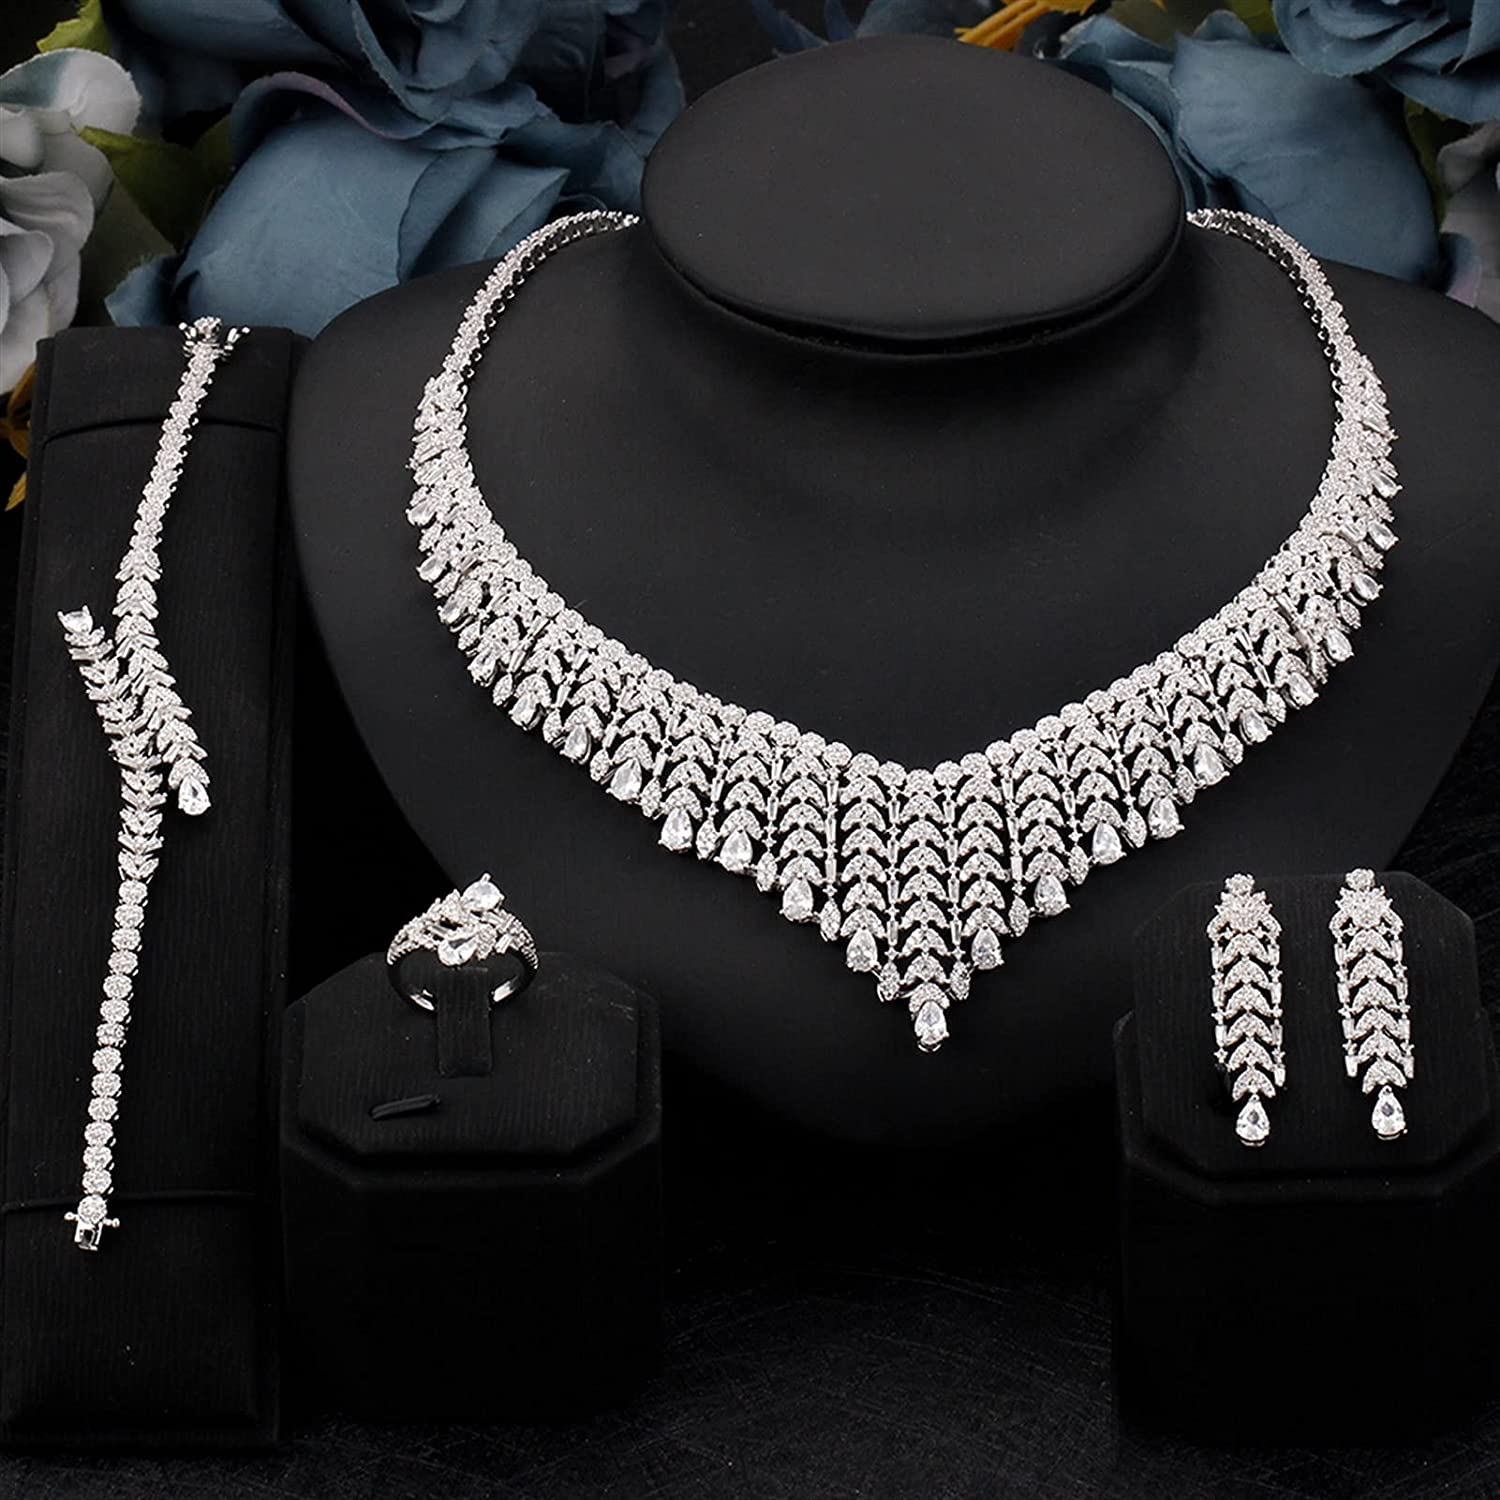 SYXMSM Jewellery Set Las We OFFer at cheap prices Vegas Mall 4PCS Bridal Jewelry Zirconia Cubic Full